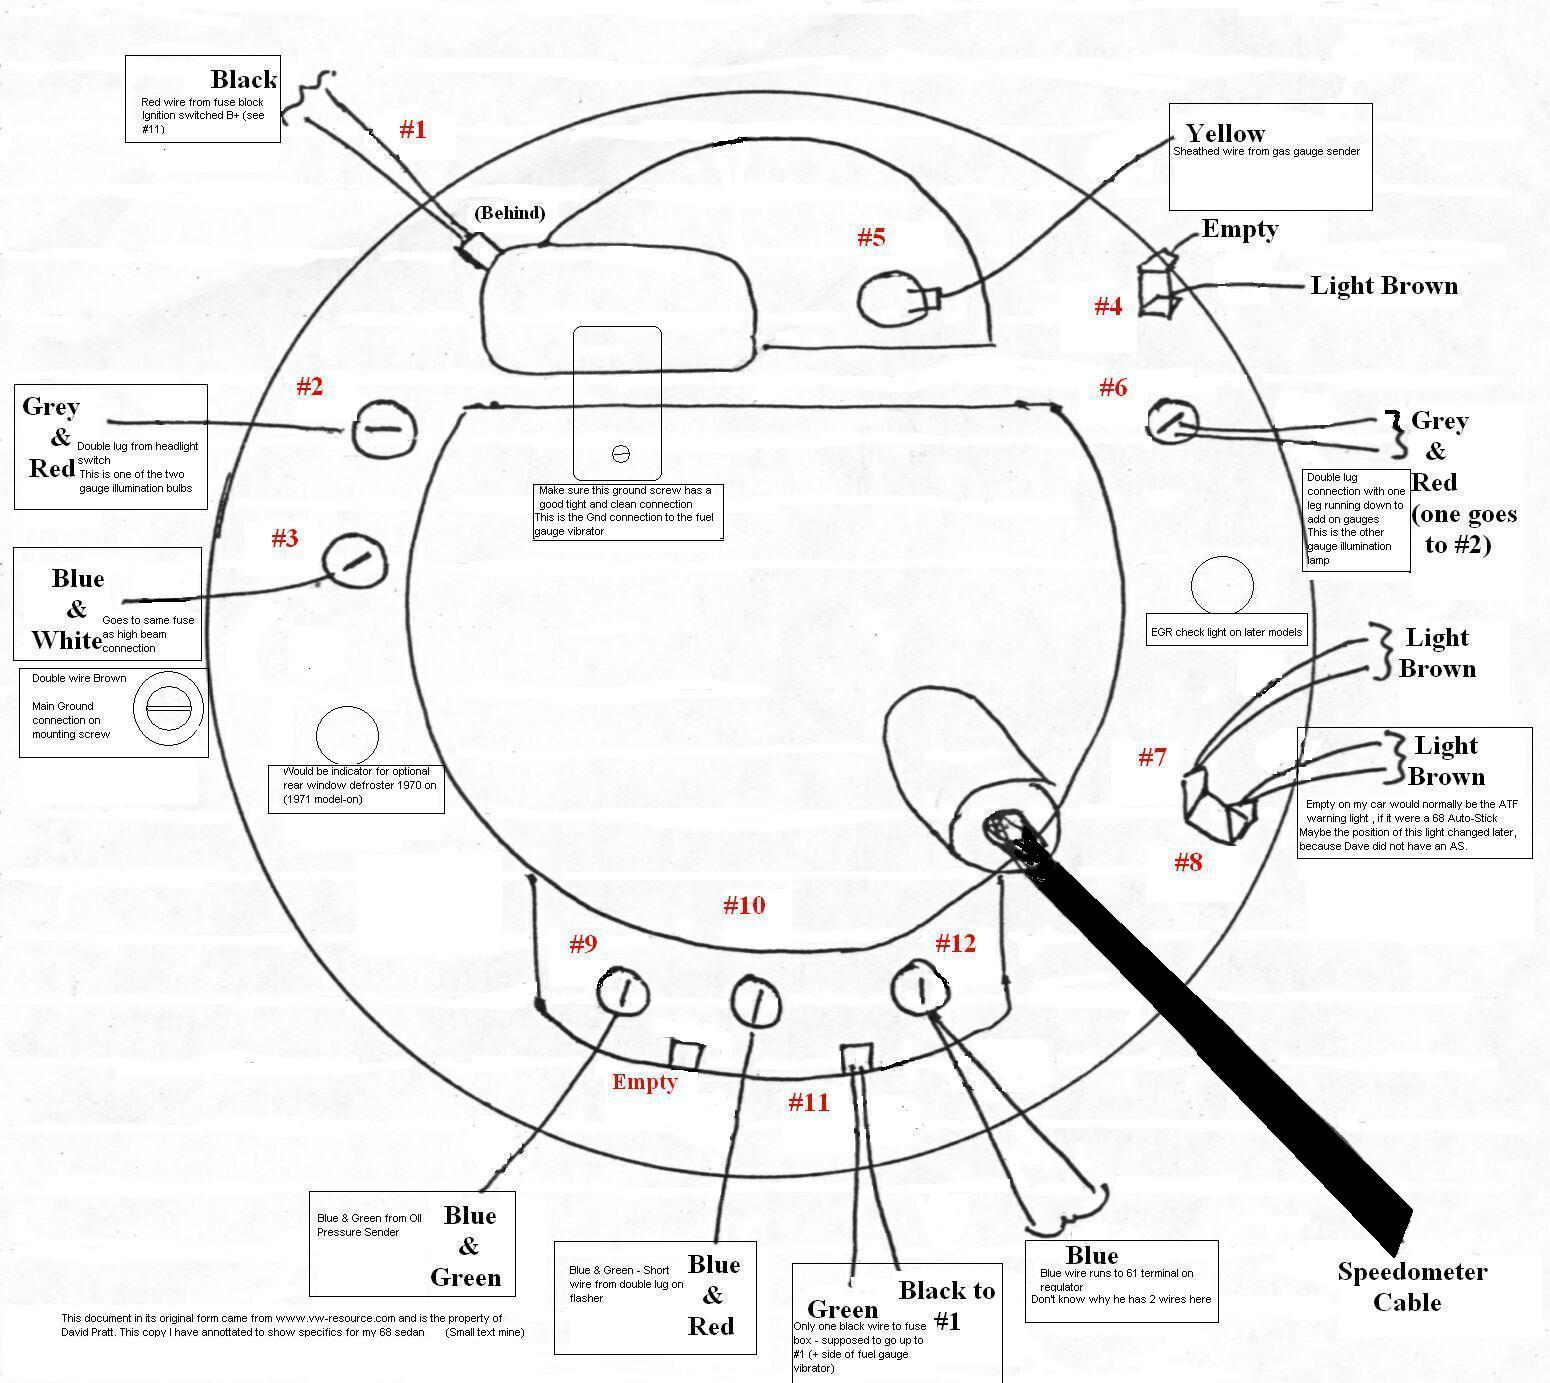 vw tachometer gauge wiring diagram wiring diagram 2003 Tohatsu 70 HP Tachometer Wiring Diagram bug wiring diagram my vw beetle build site volkswagen beetle tocom beetle late model super up